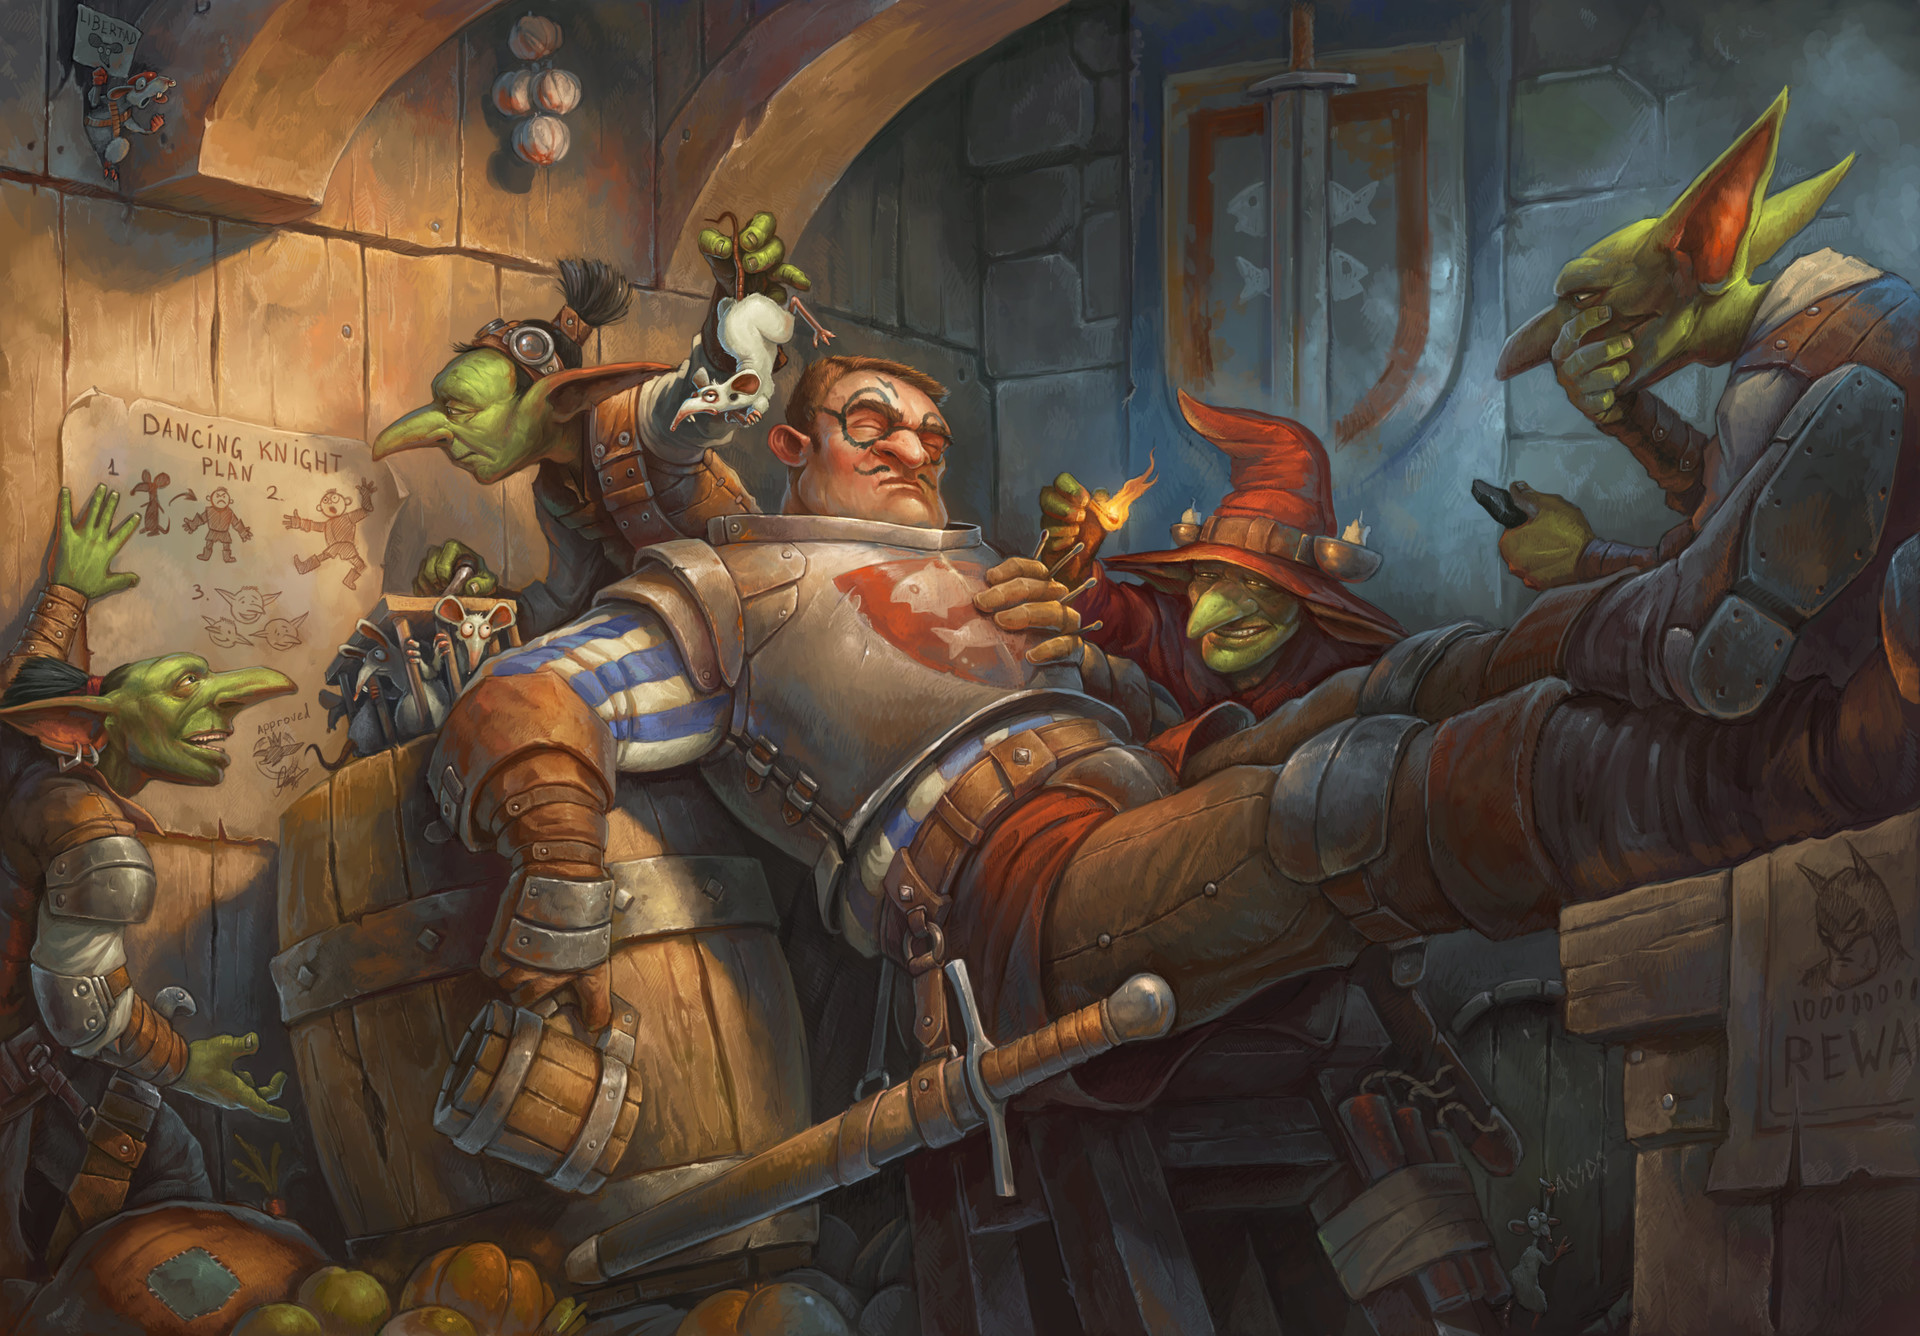 Dancing Knight or return of the green team,by illustrator Tony Sart